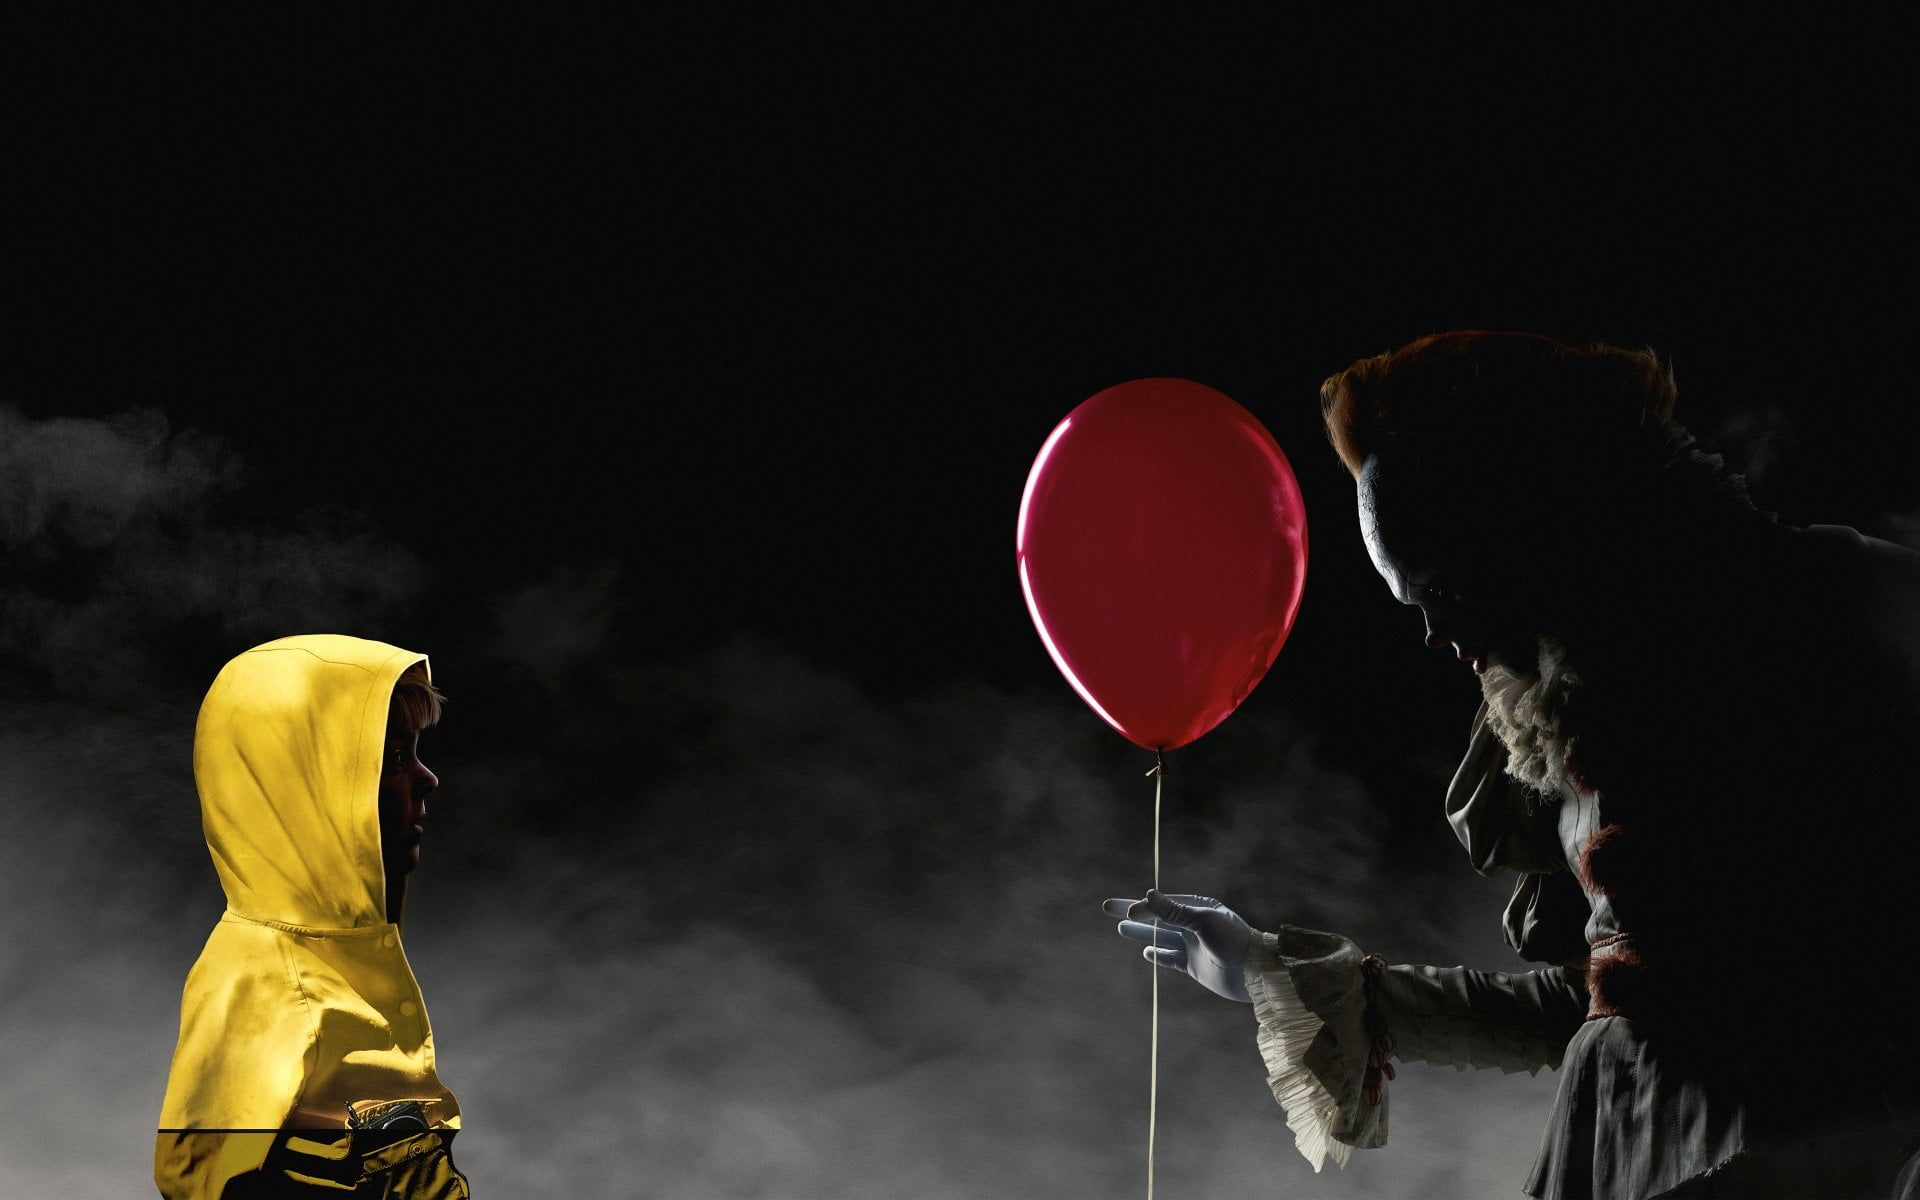 Red Balloon Movie It 2017 Clown Horror Pennywise It Scary